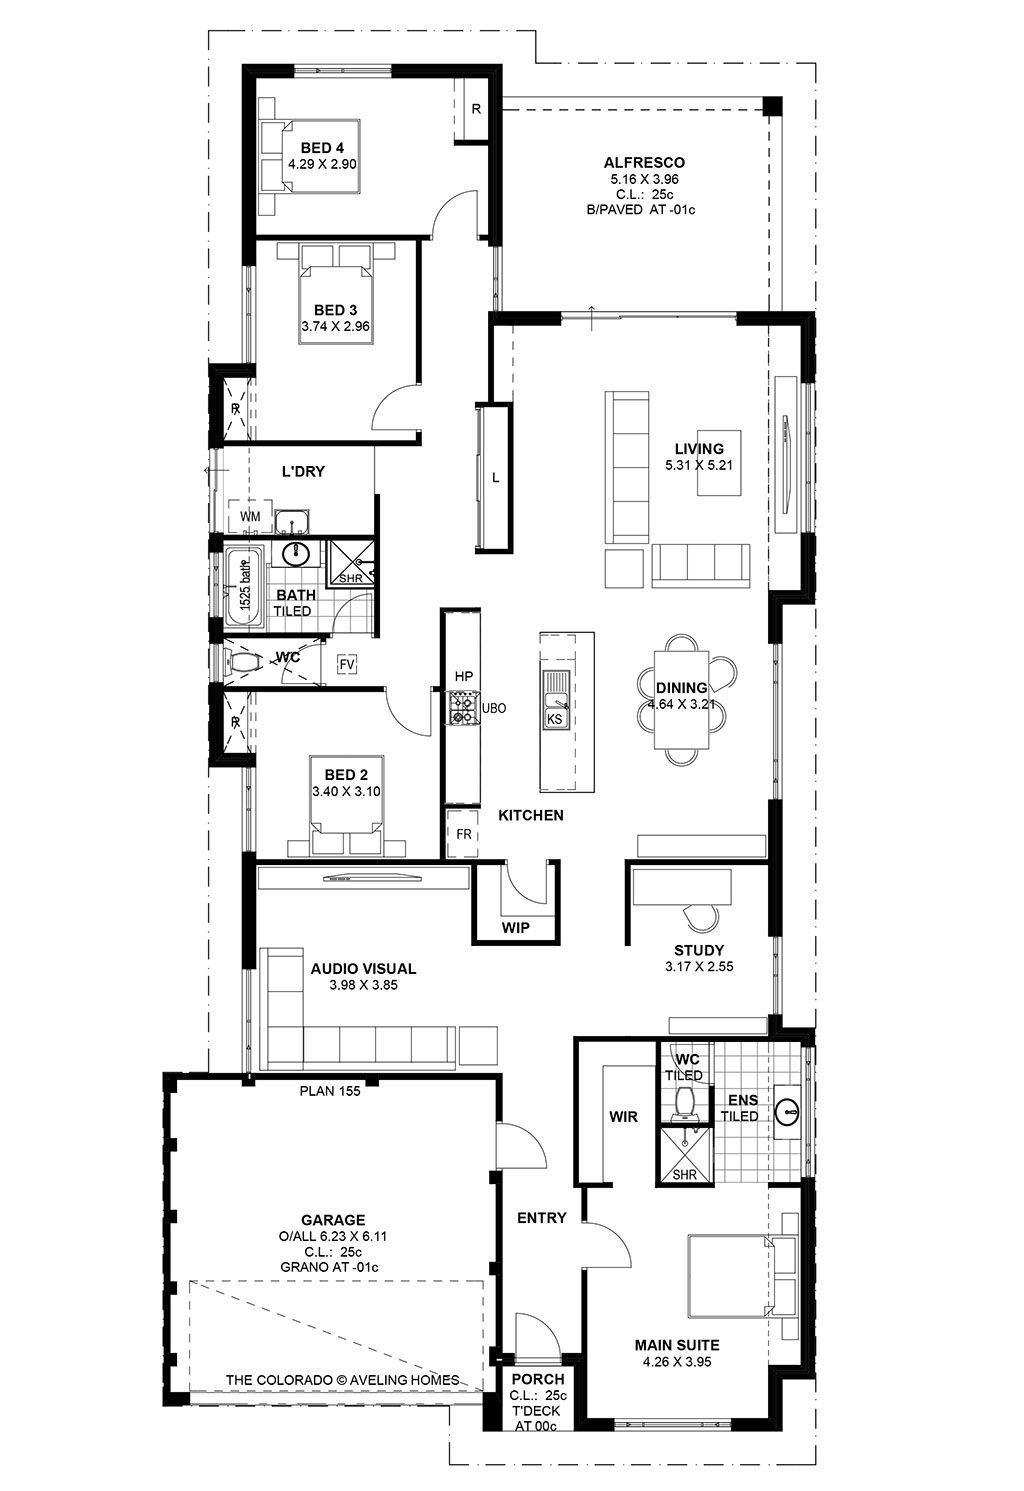 Colorado Aveling Homes Floor Plans 4 Bedroom House Plans House Plans